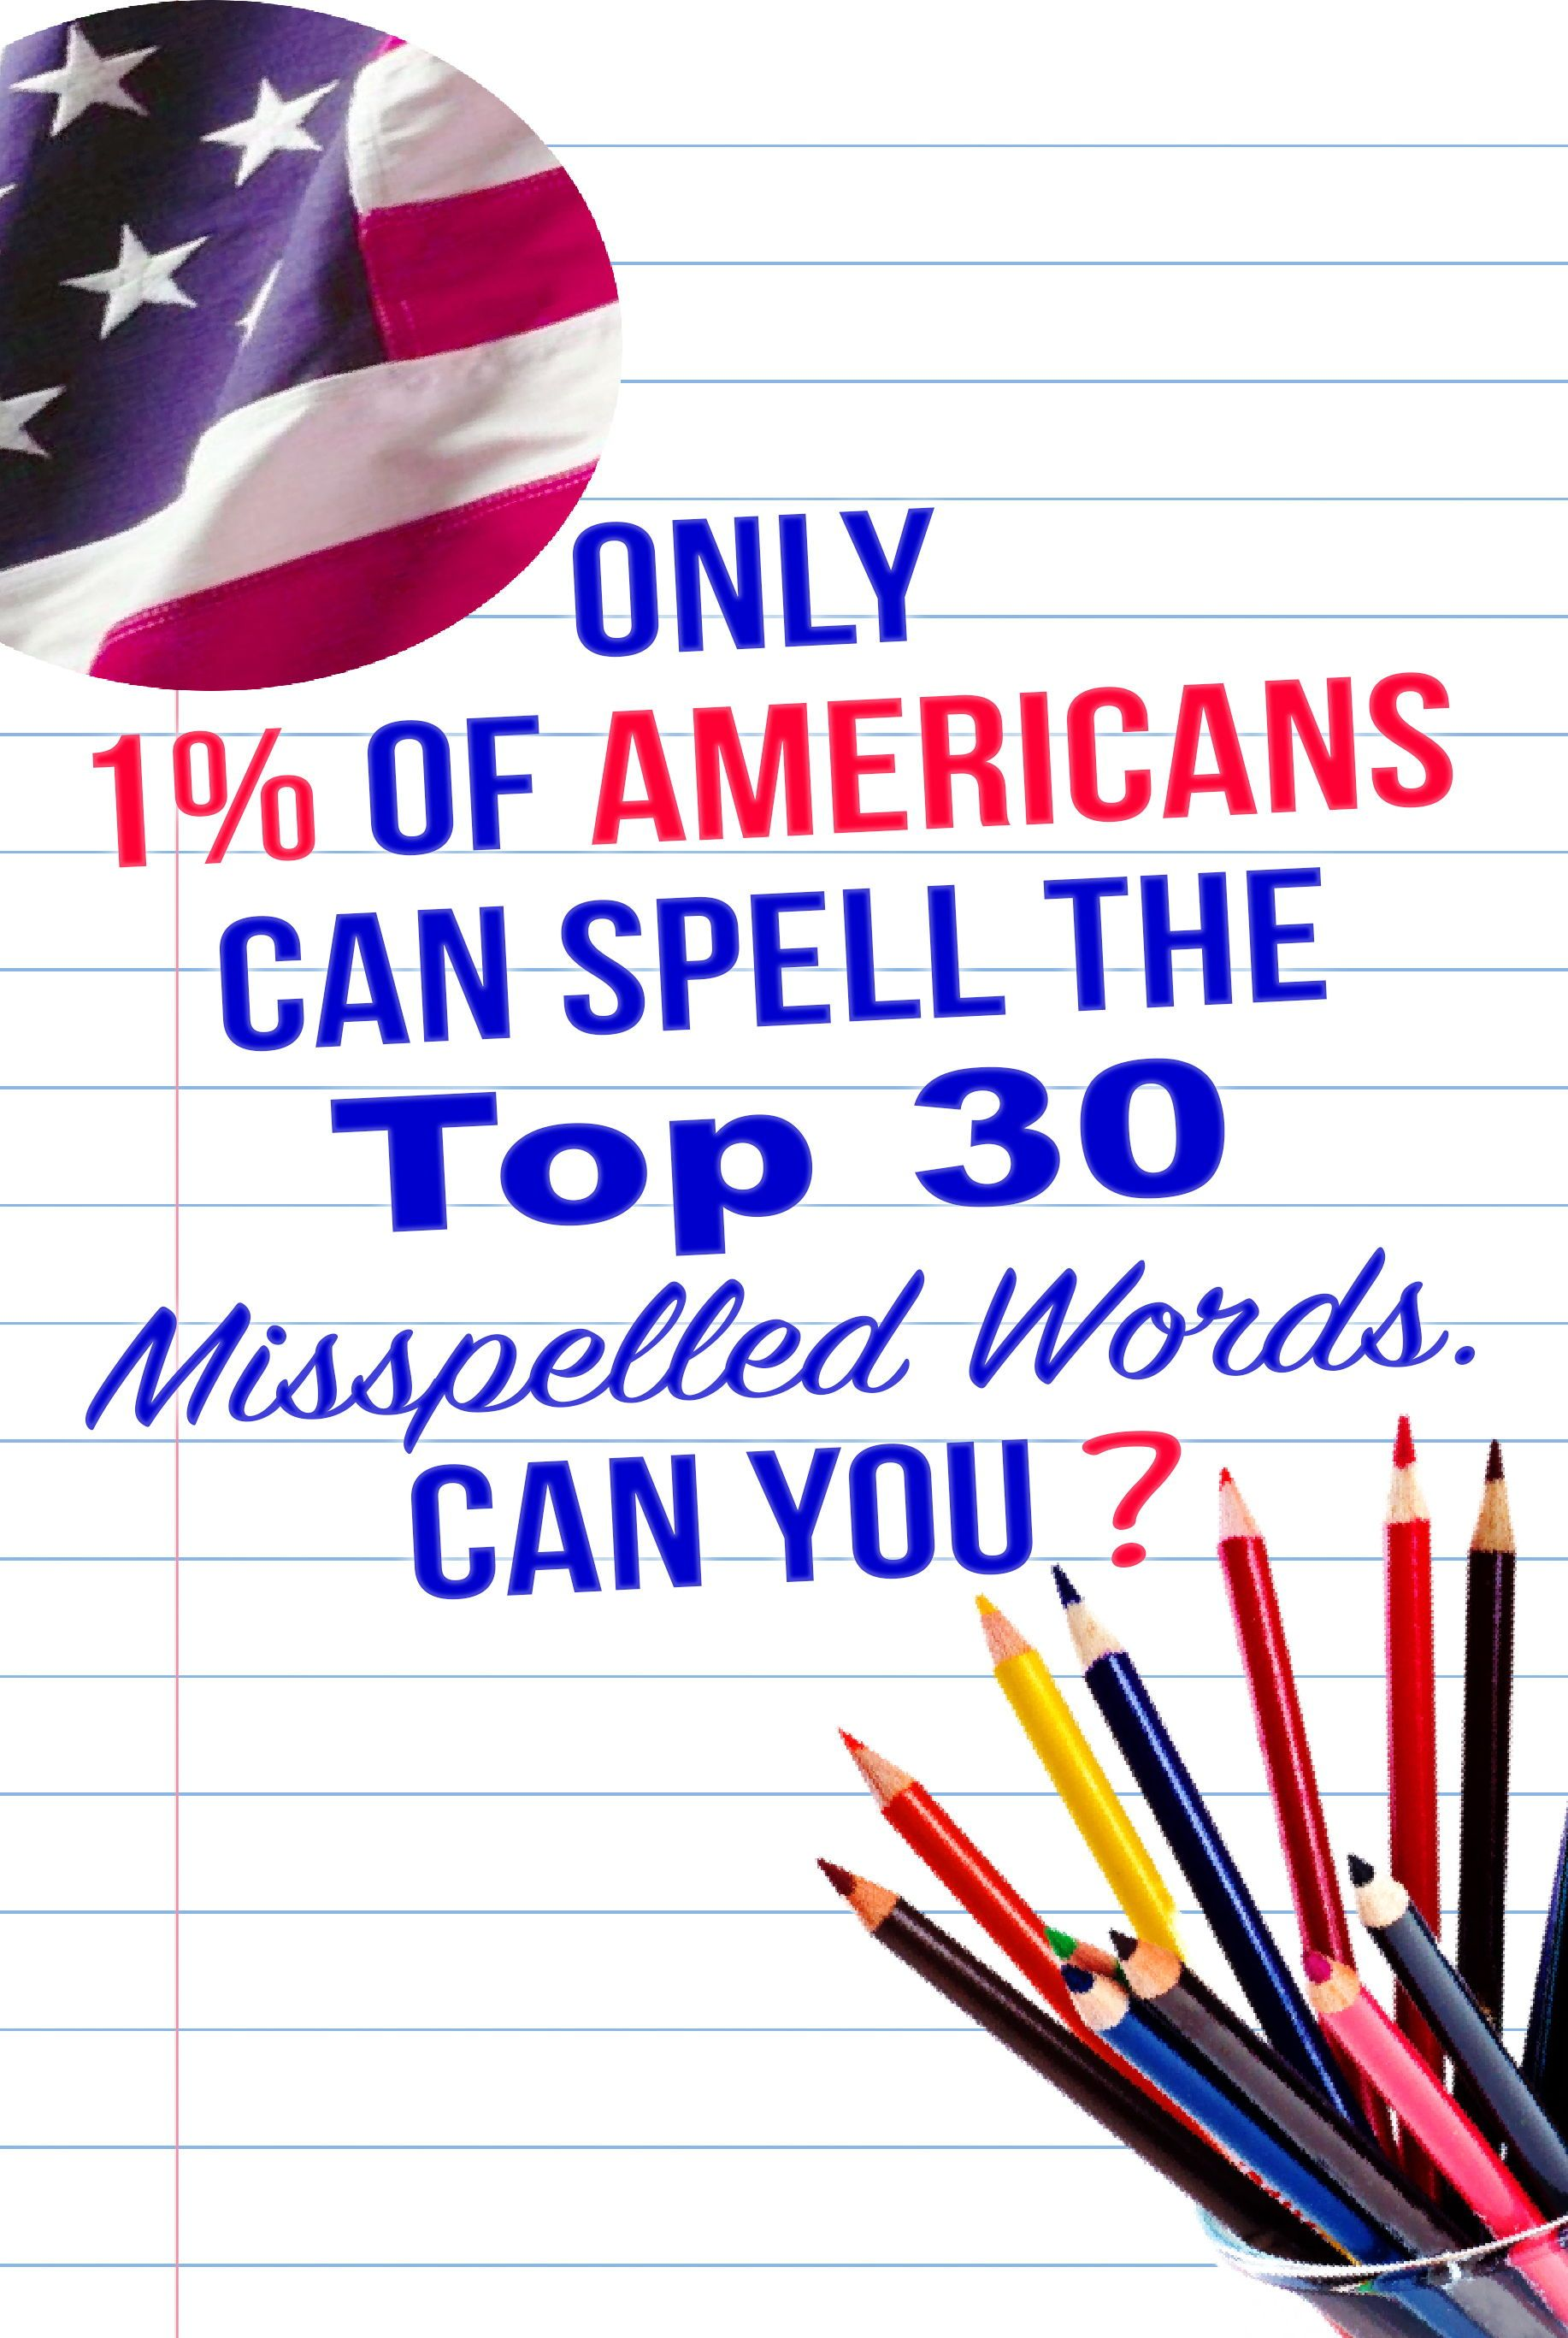 Only 1 Of Americans Can Spell The Top 30 Misspelled Words